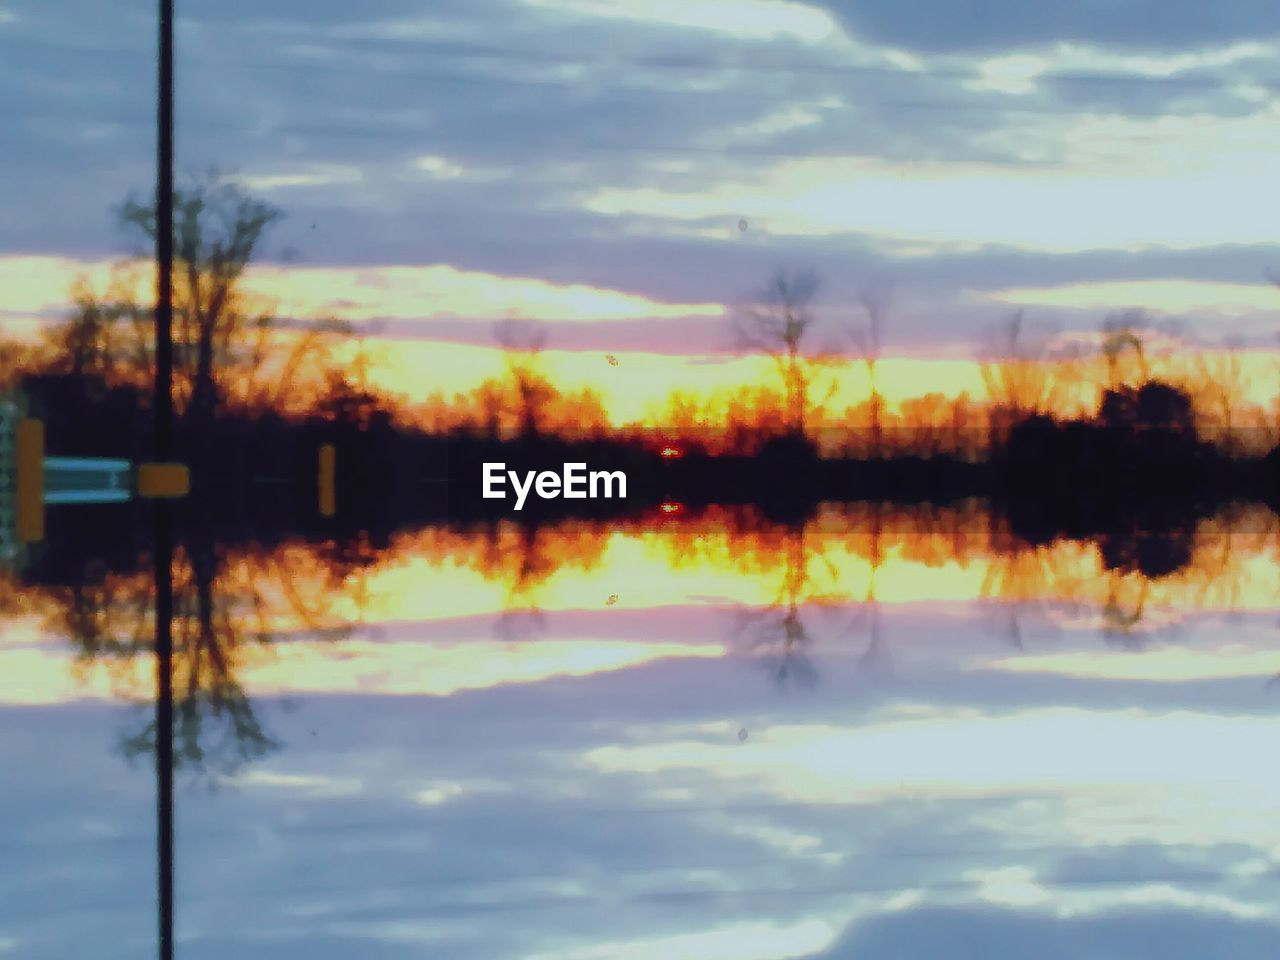 sky, cloud - sky, reflection, water, no people, nature, outdoors, tranquility, lake, scenics, beauty in nature, sunset, symmetry, day, close-up